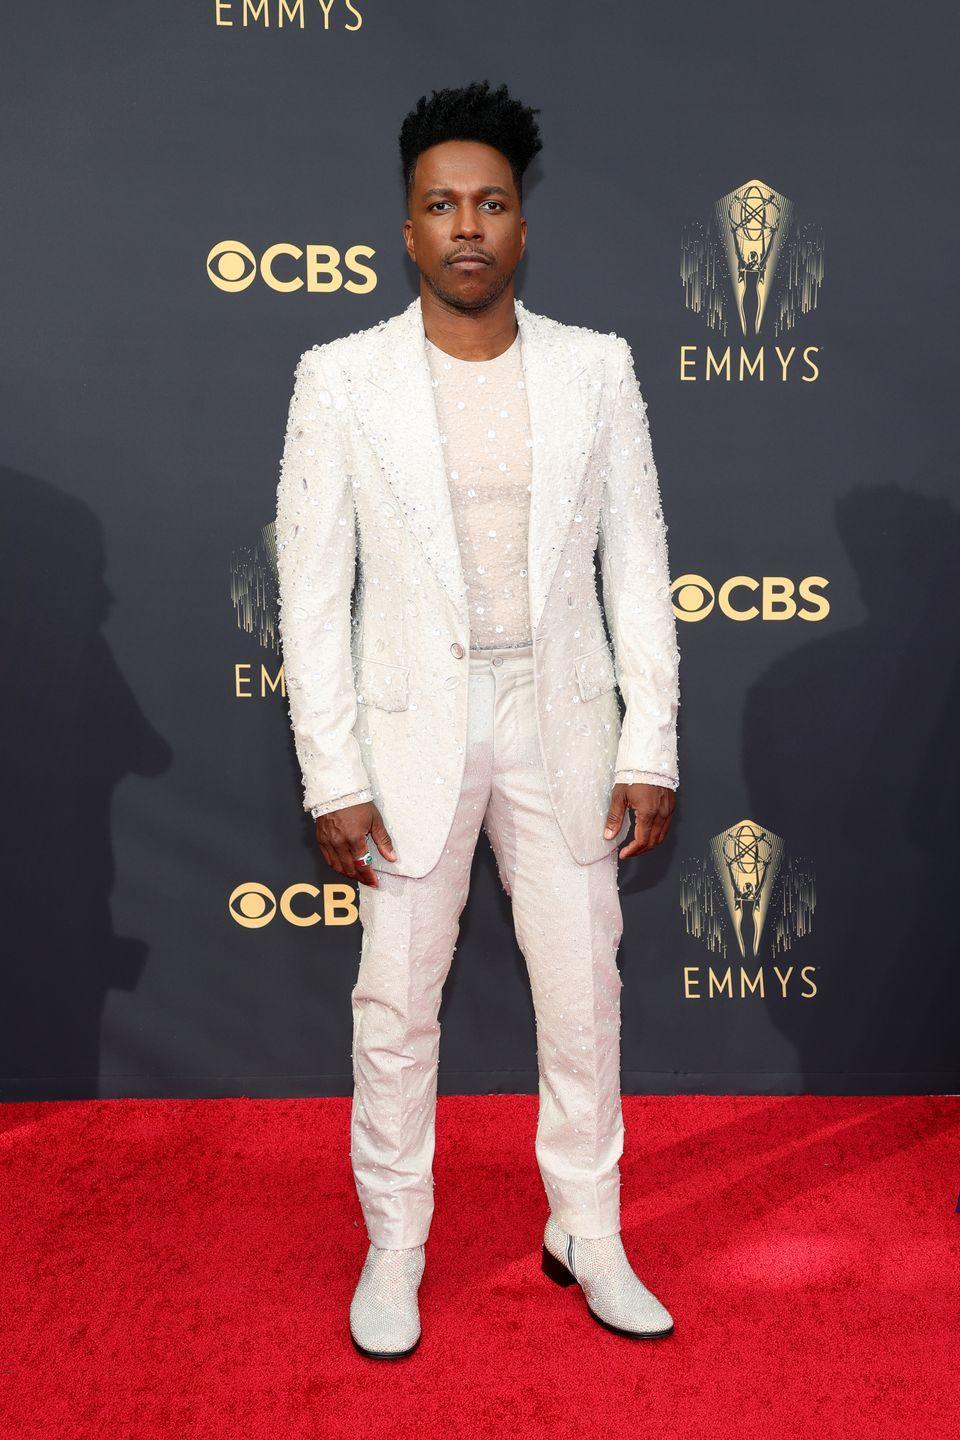 <p>Bold and bright with sparkle to spare, Leslie Odom Jr.'s look isn't for the faint of heart, but he carries it off with ease.</p><p><em>In Dolce & Gabbana</em></p>